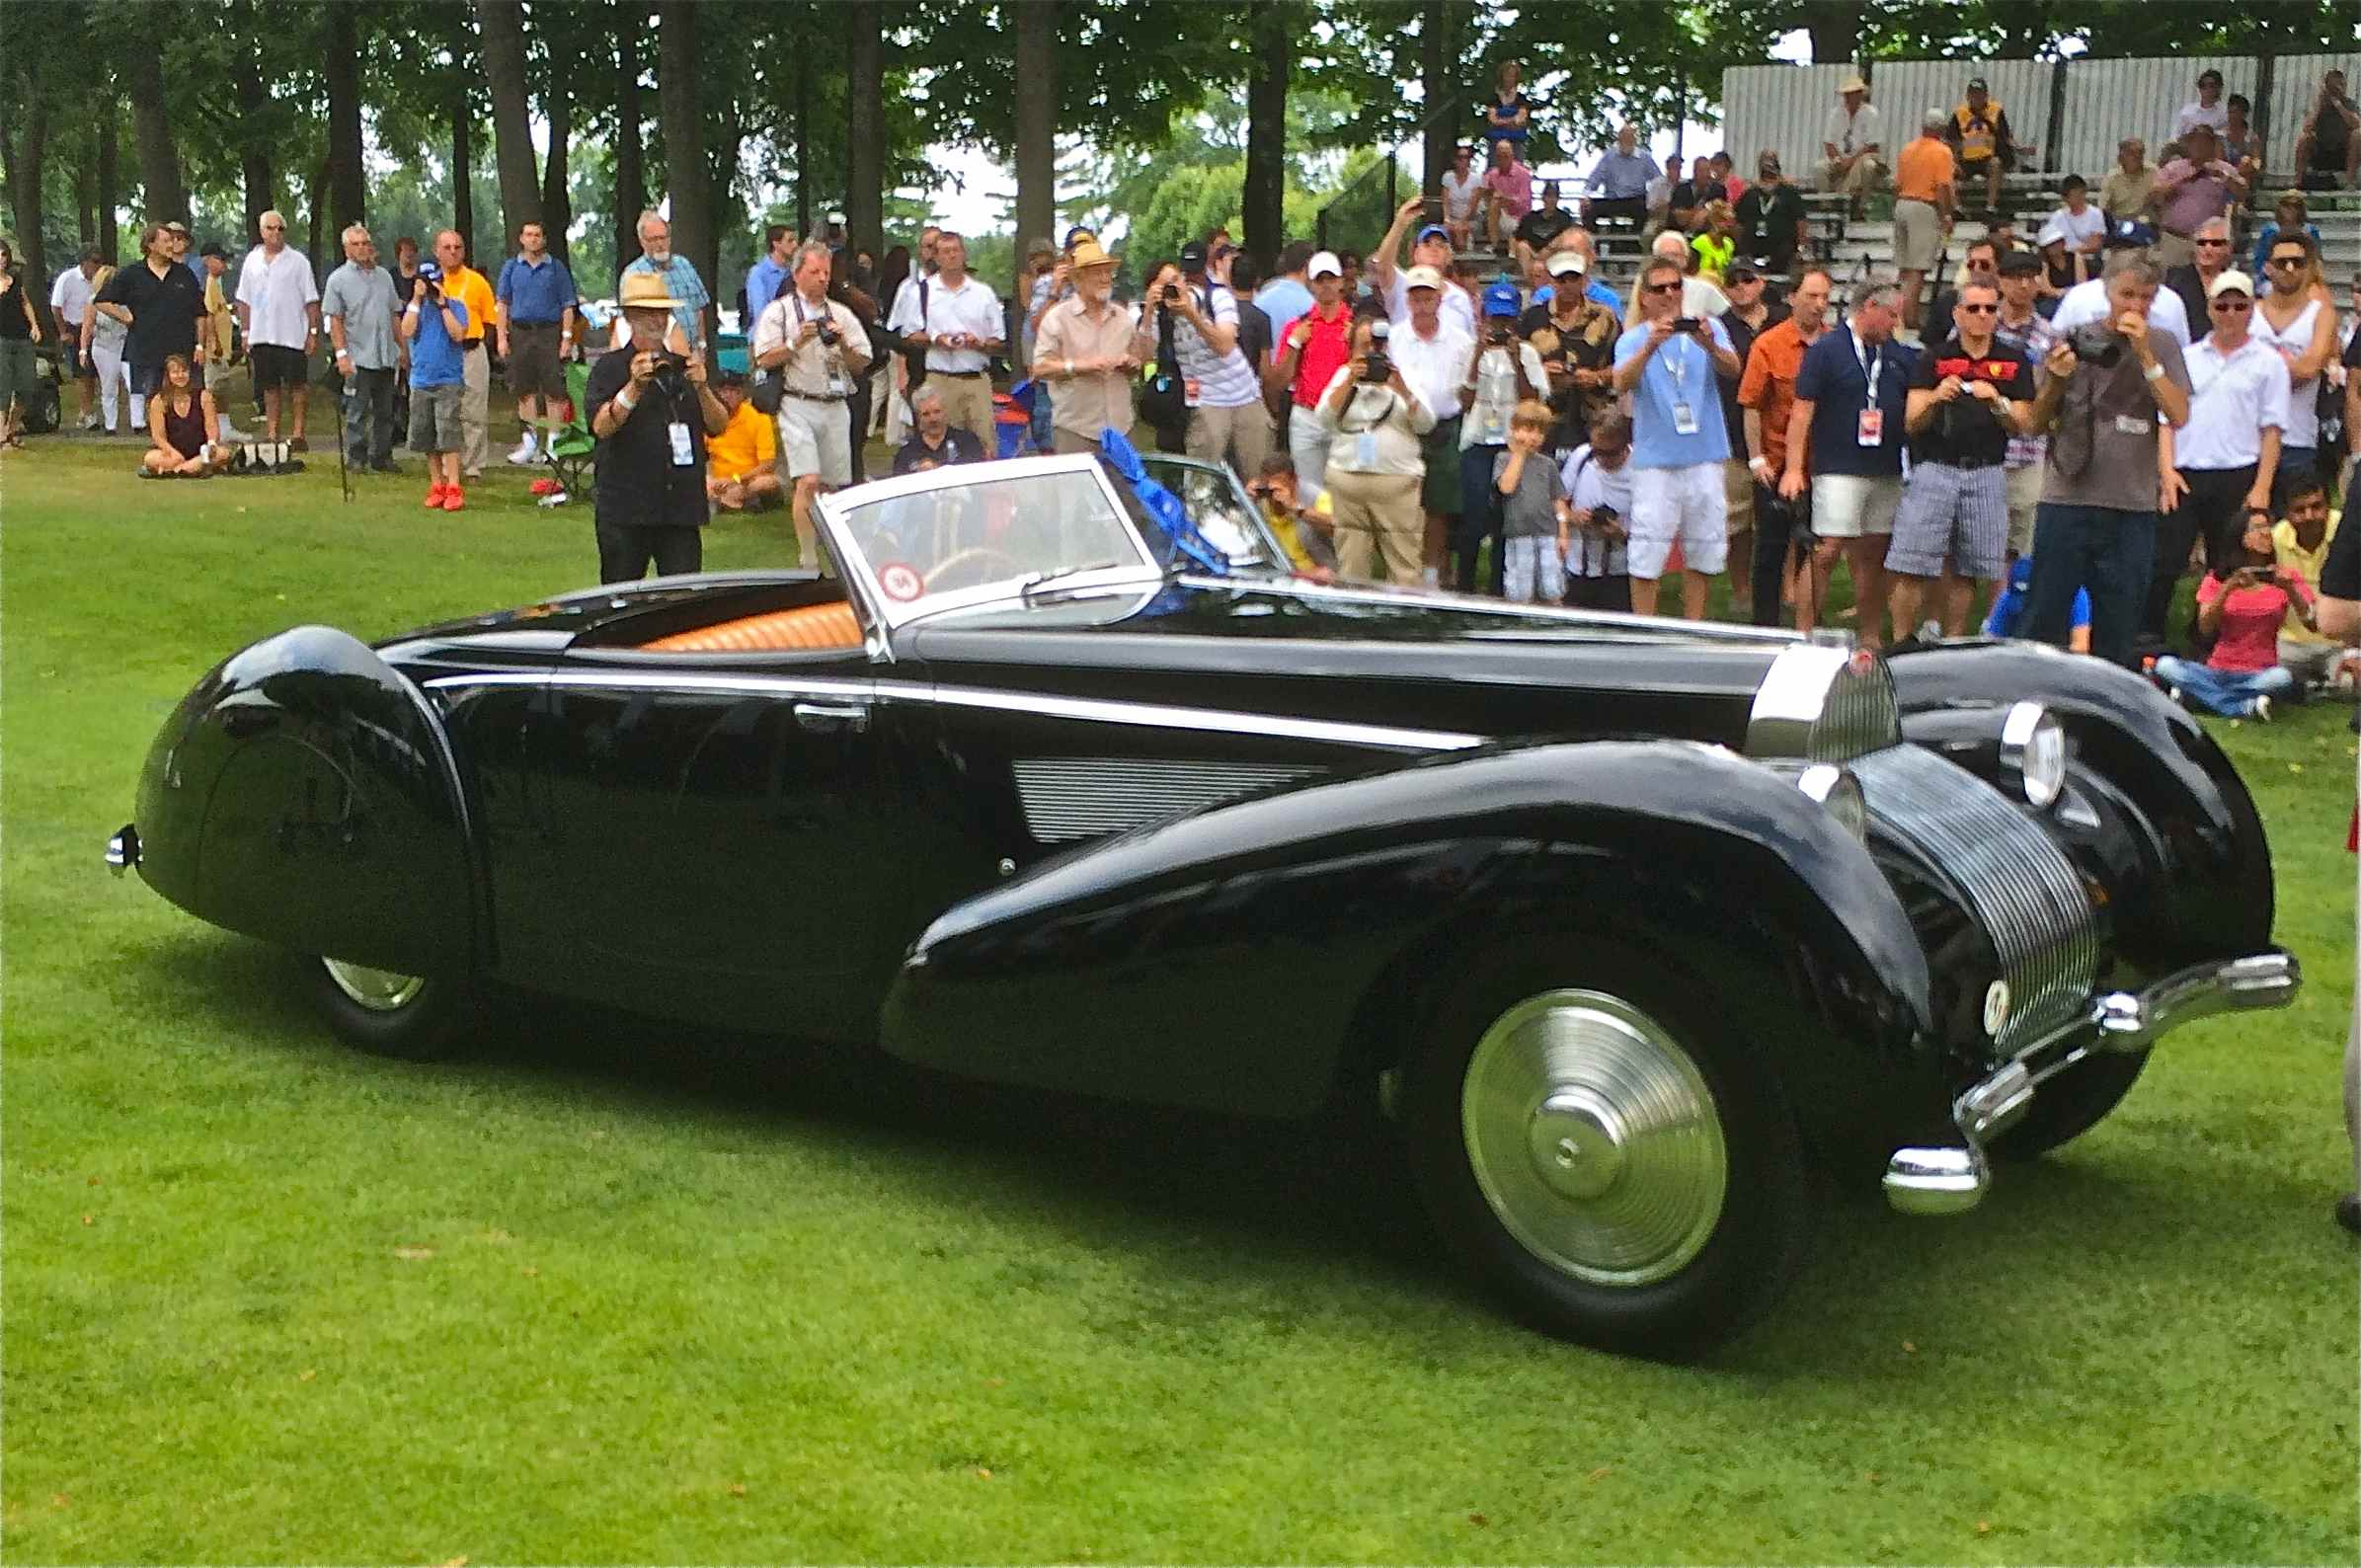 The concours d elegance